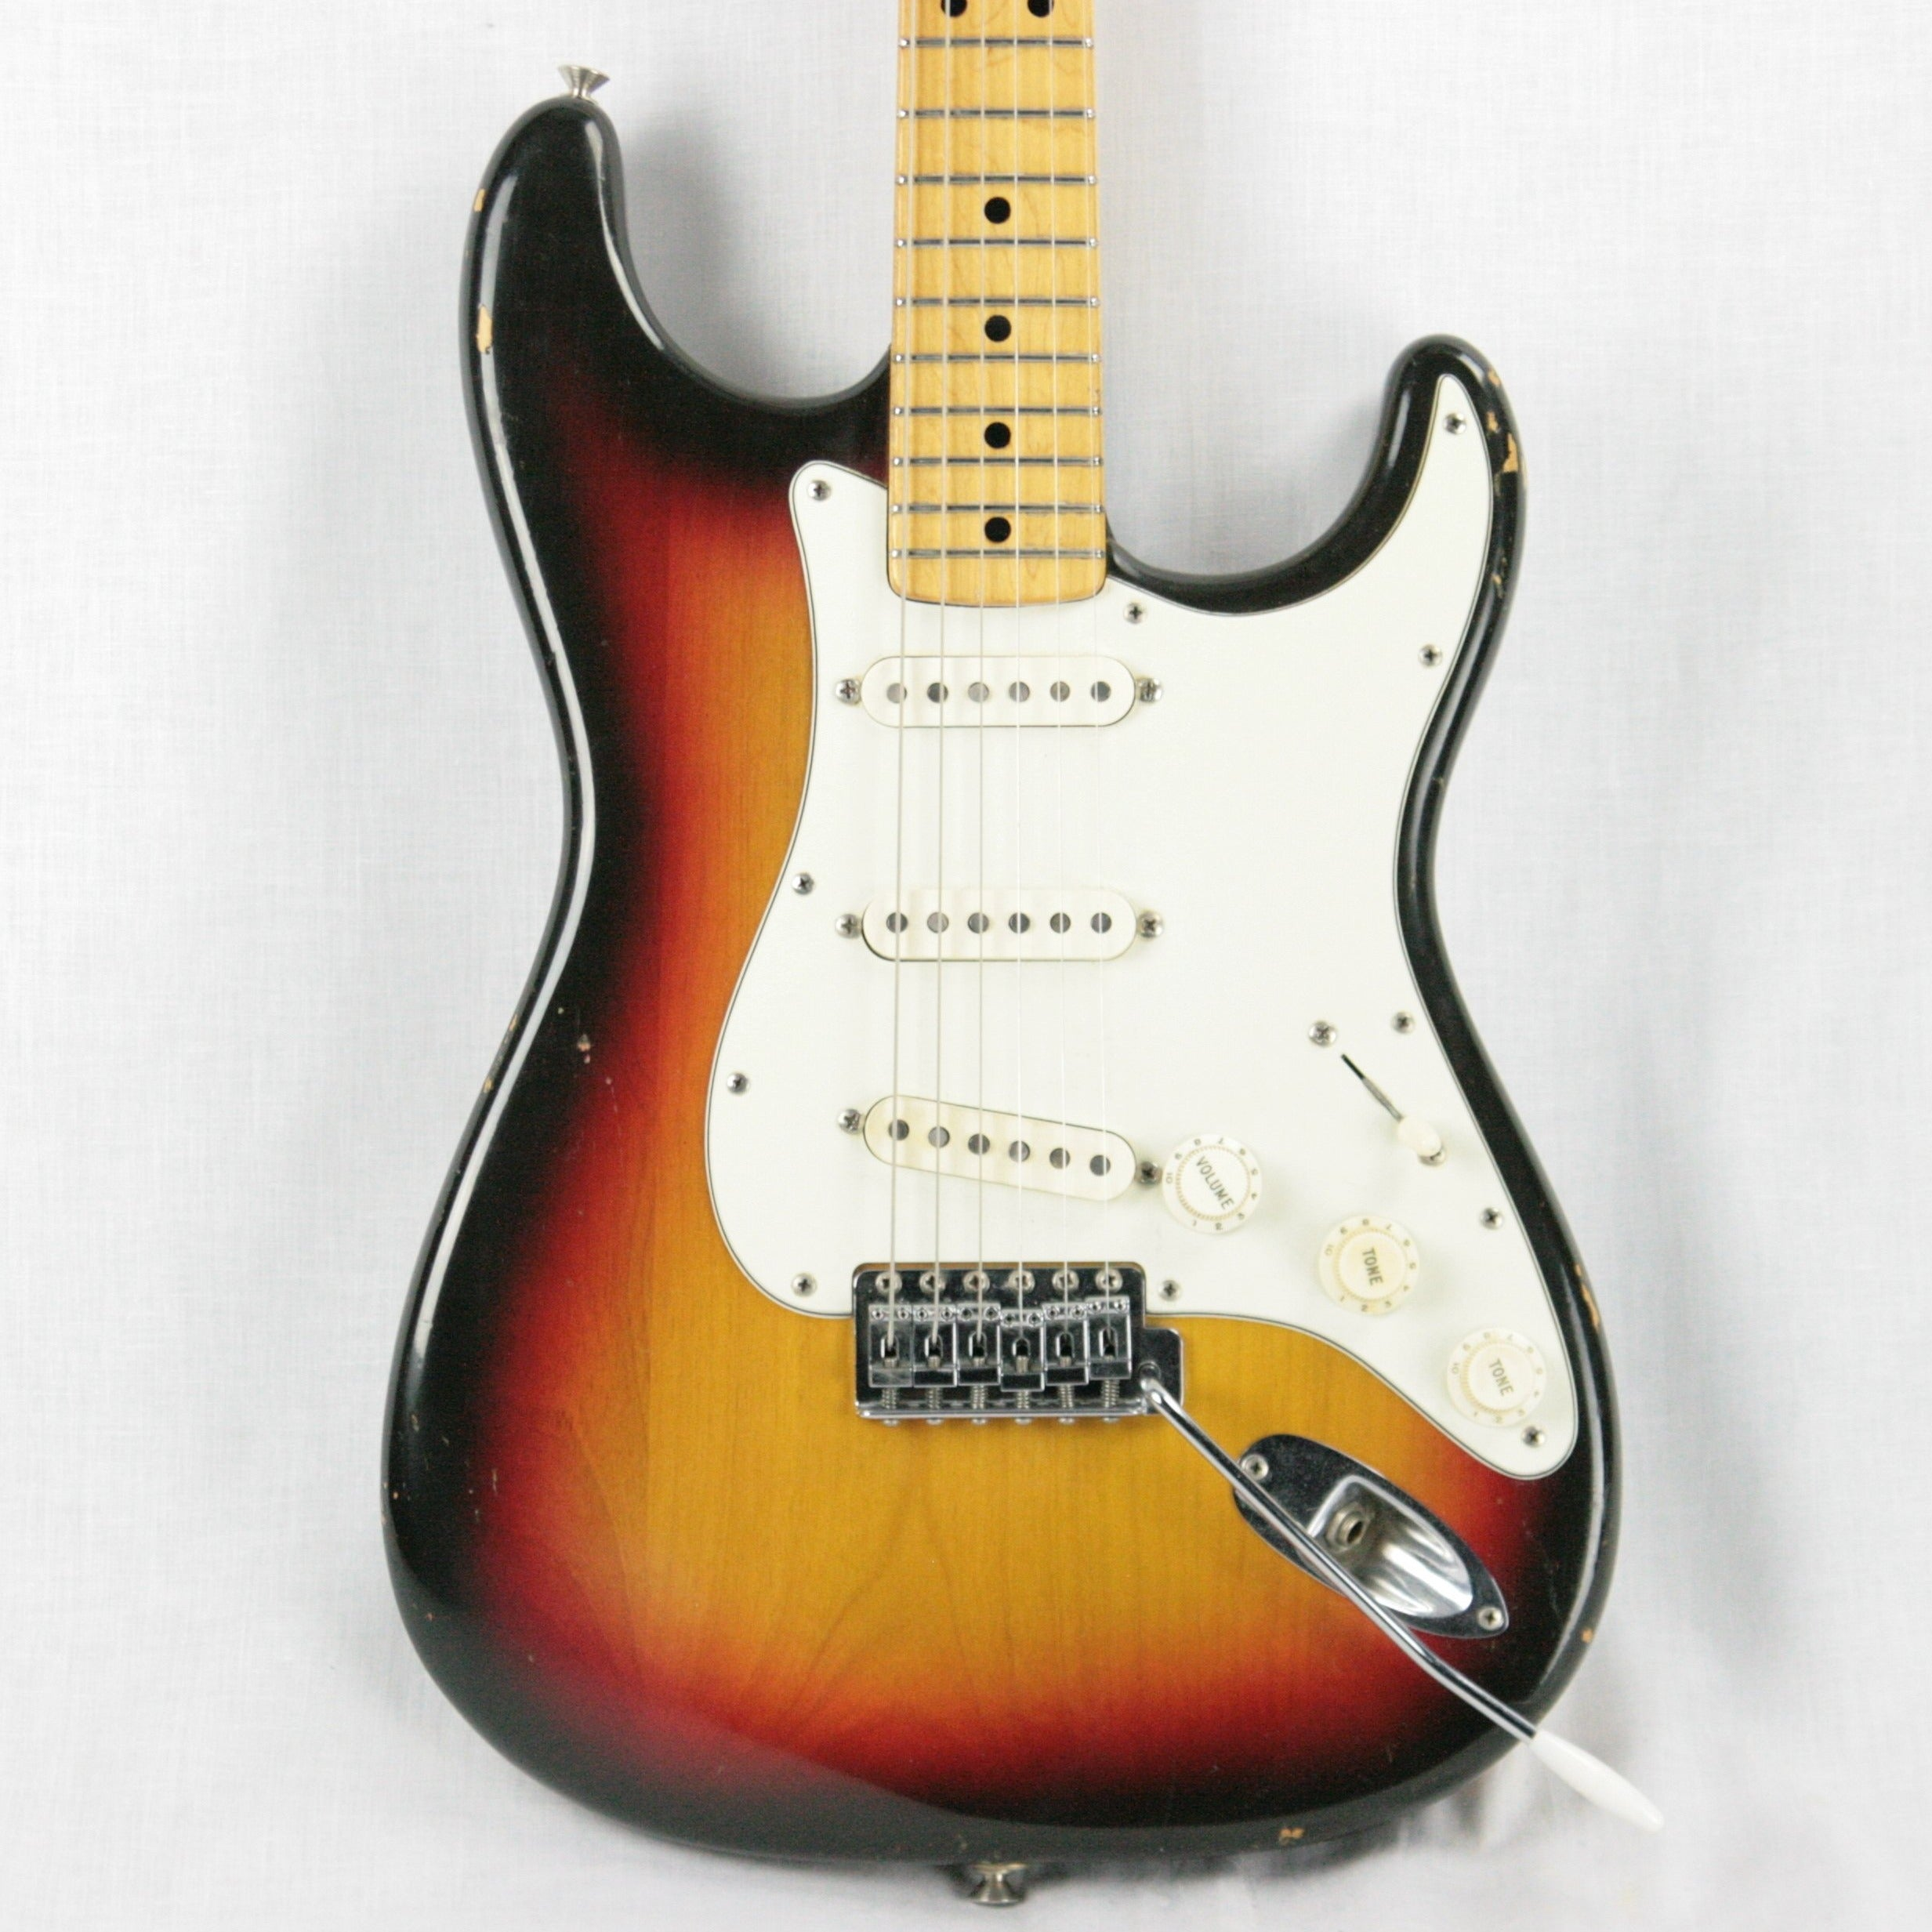 1973 Fender Stratocaster SUNBURST w/ Maple Neck Strat! Staggered Pole Pups 1970's